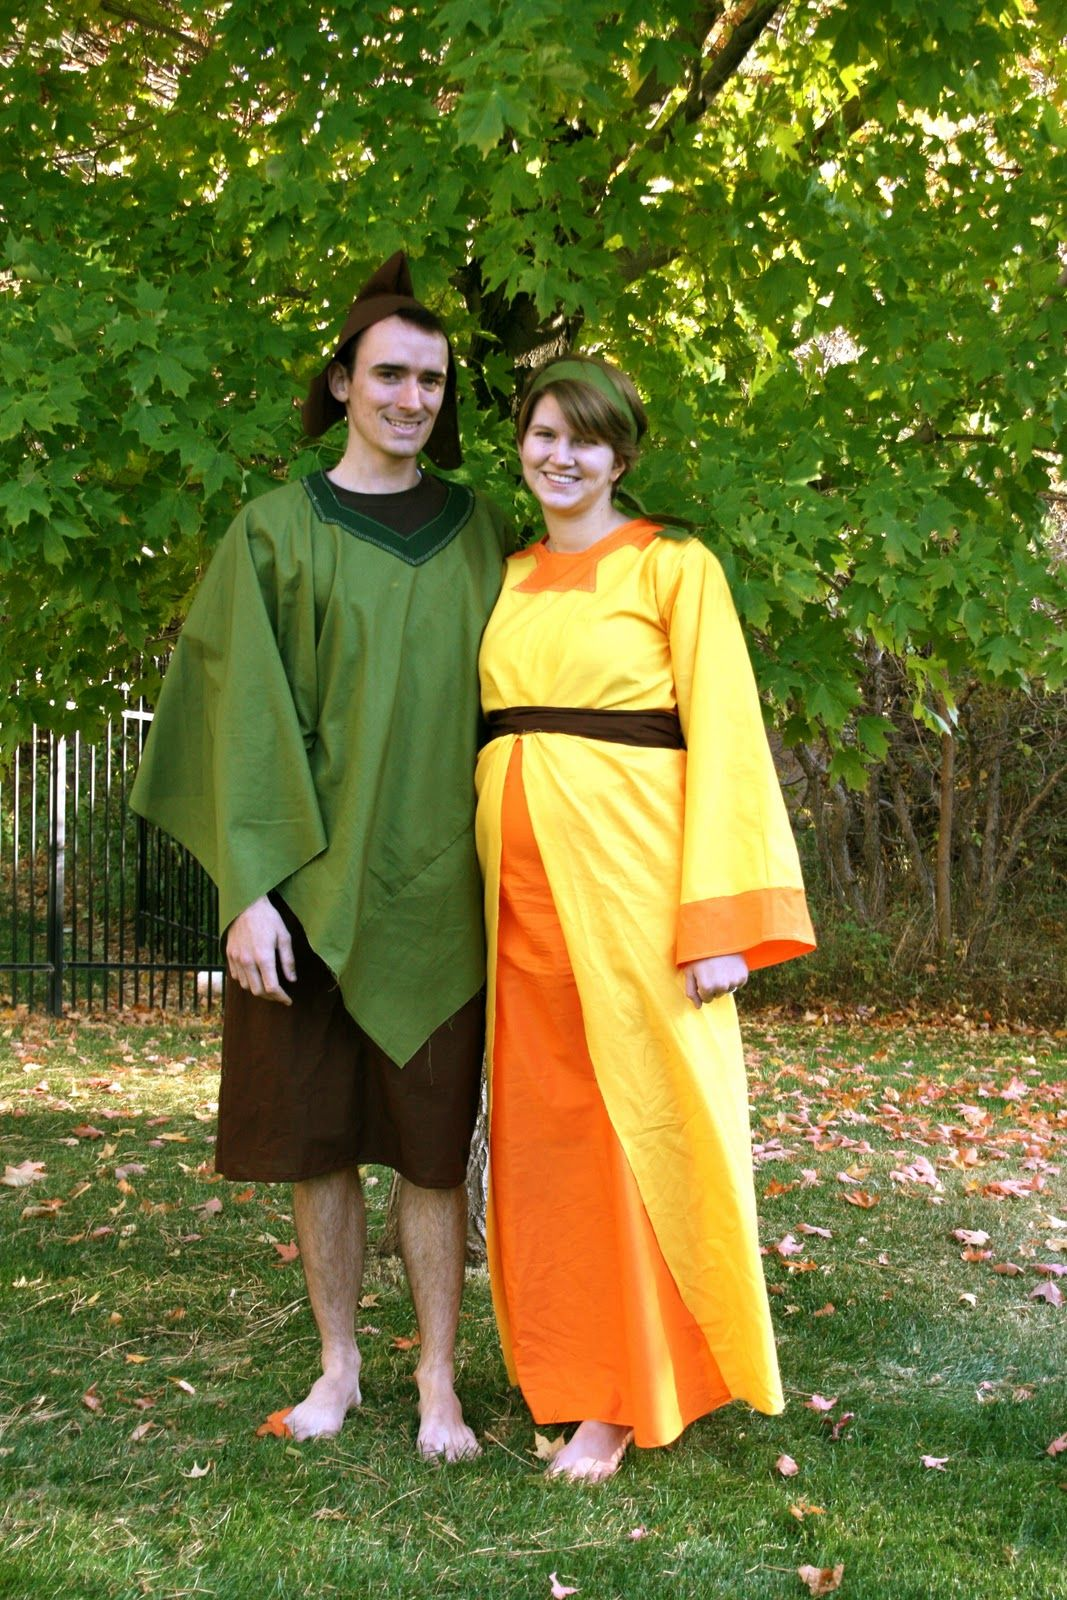 Emperor's New Groove Halloween costumes | Crafts I've Made ...